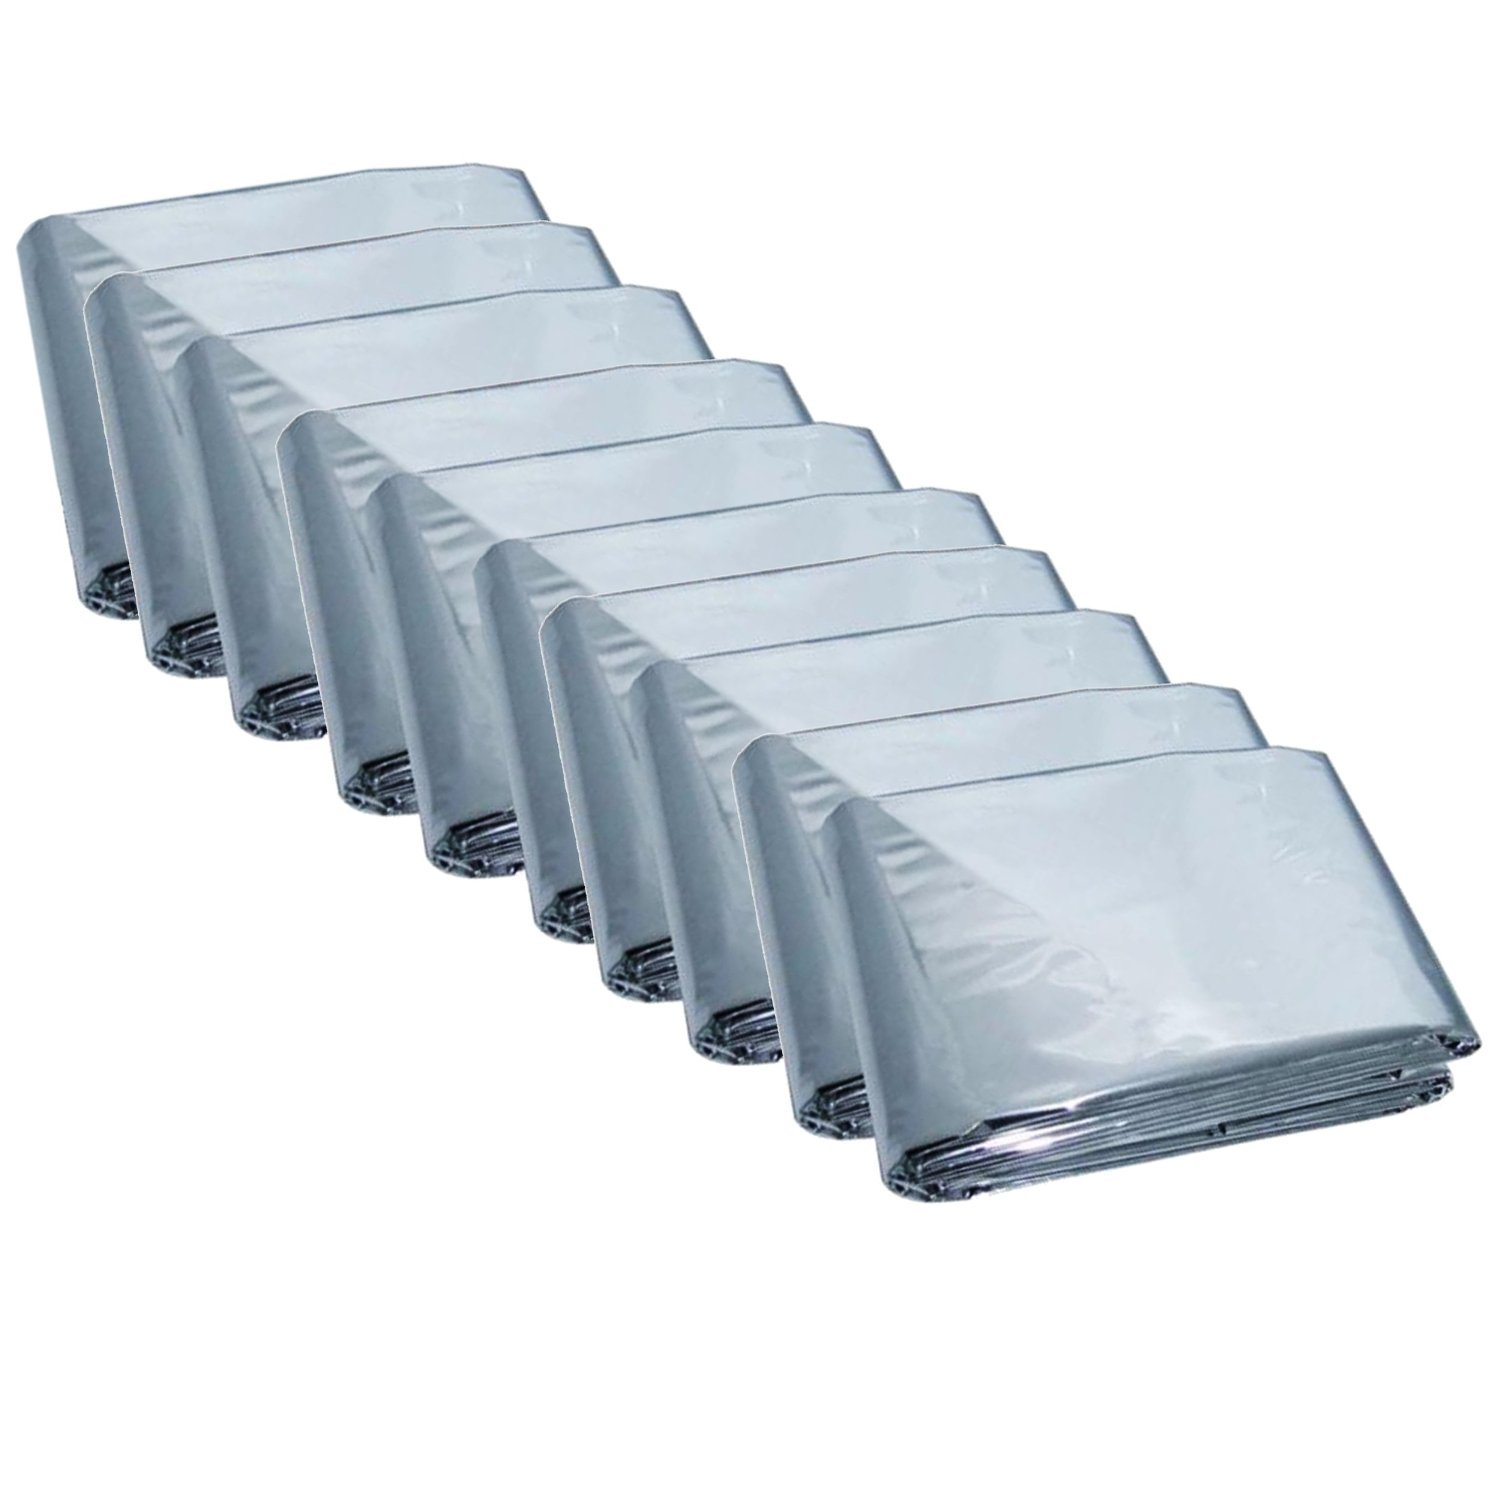 Emergency Mylar Thermal Blankets (Pack of 20)